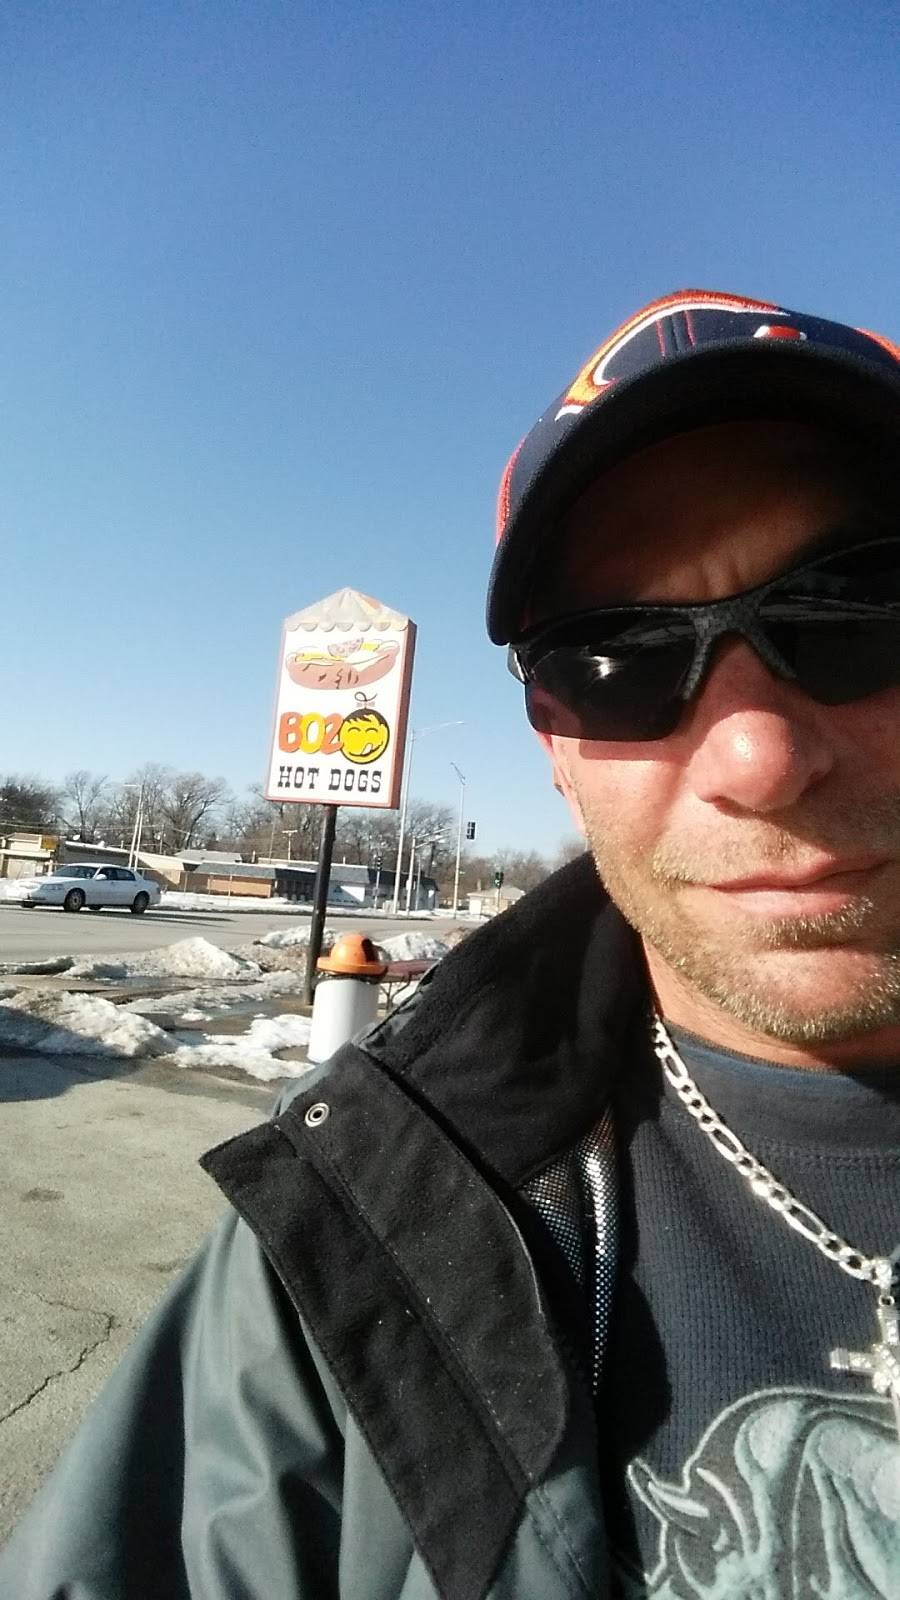 Boz Hot Dogs   meal takeaway   17031 Dixie Hwy, Hazel Crest, IL 60429, USA   7083359815 OR +1 708-335-9815